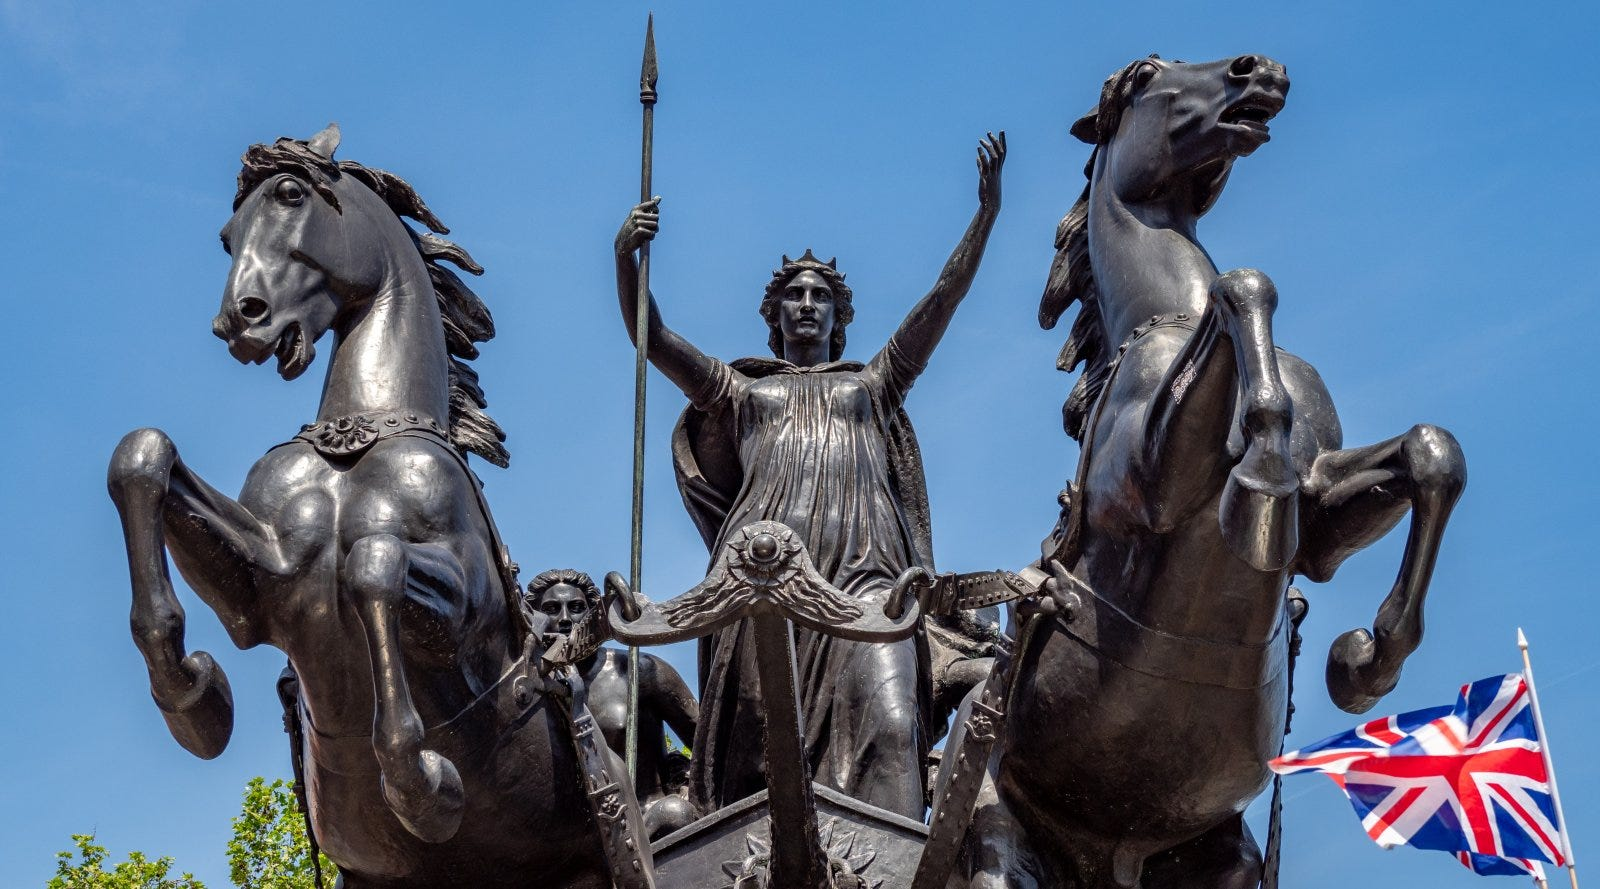 statue of Boudicca on chariot with two horses rearing in foreground